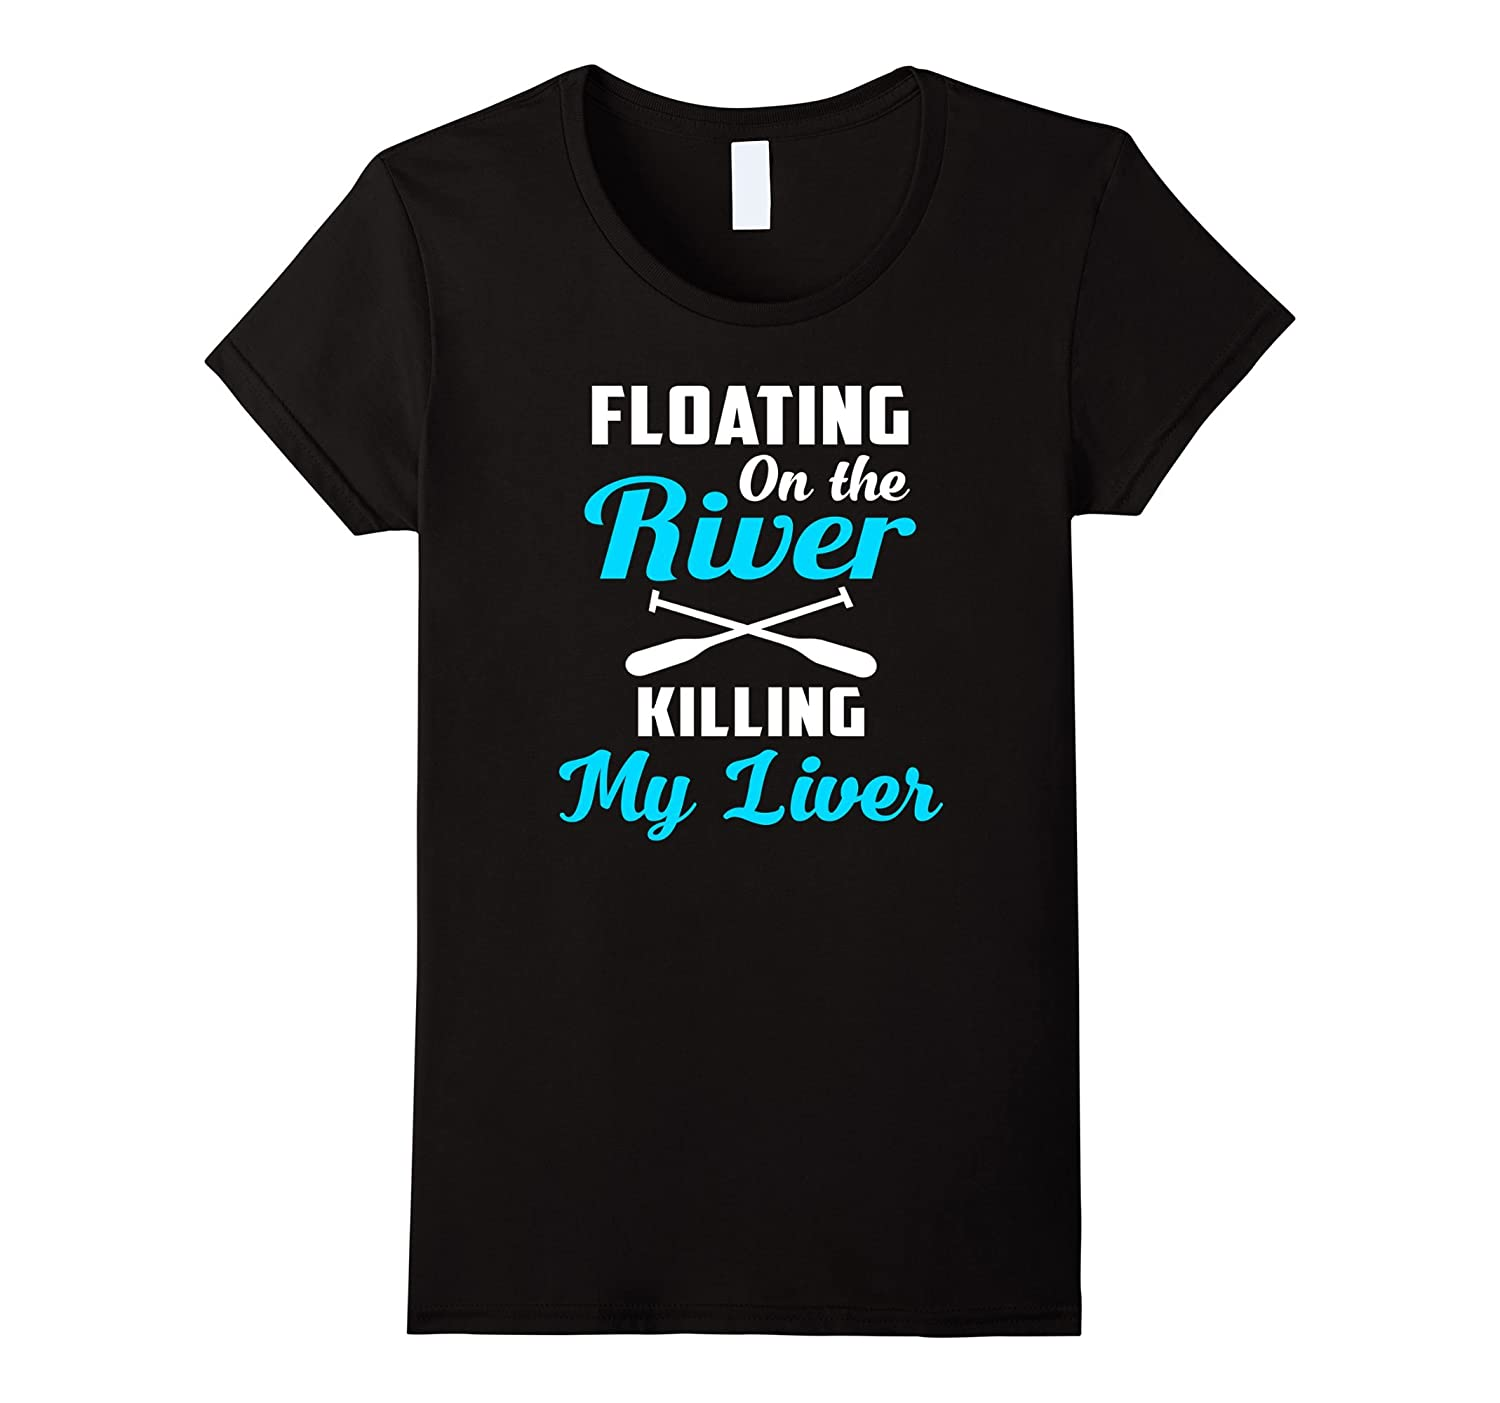 Floatin On The River Killin' My Liver Kayak Shirt